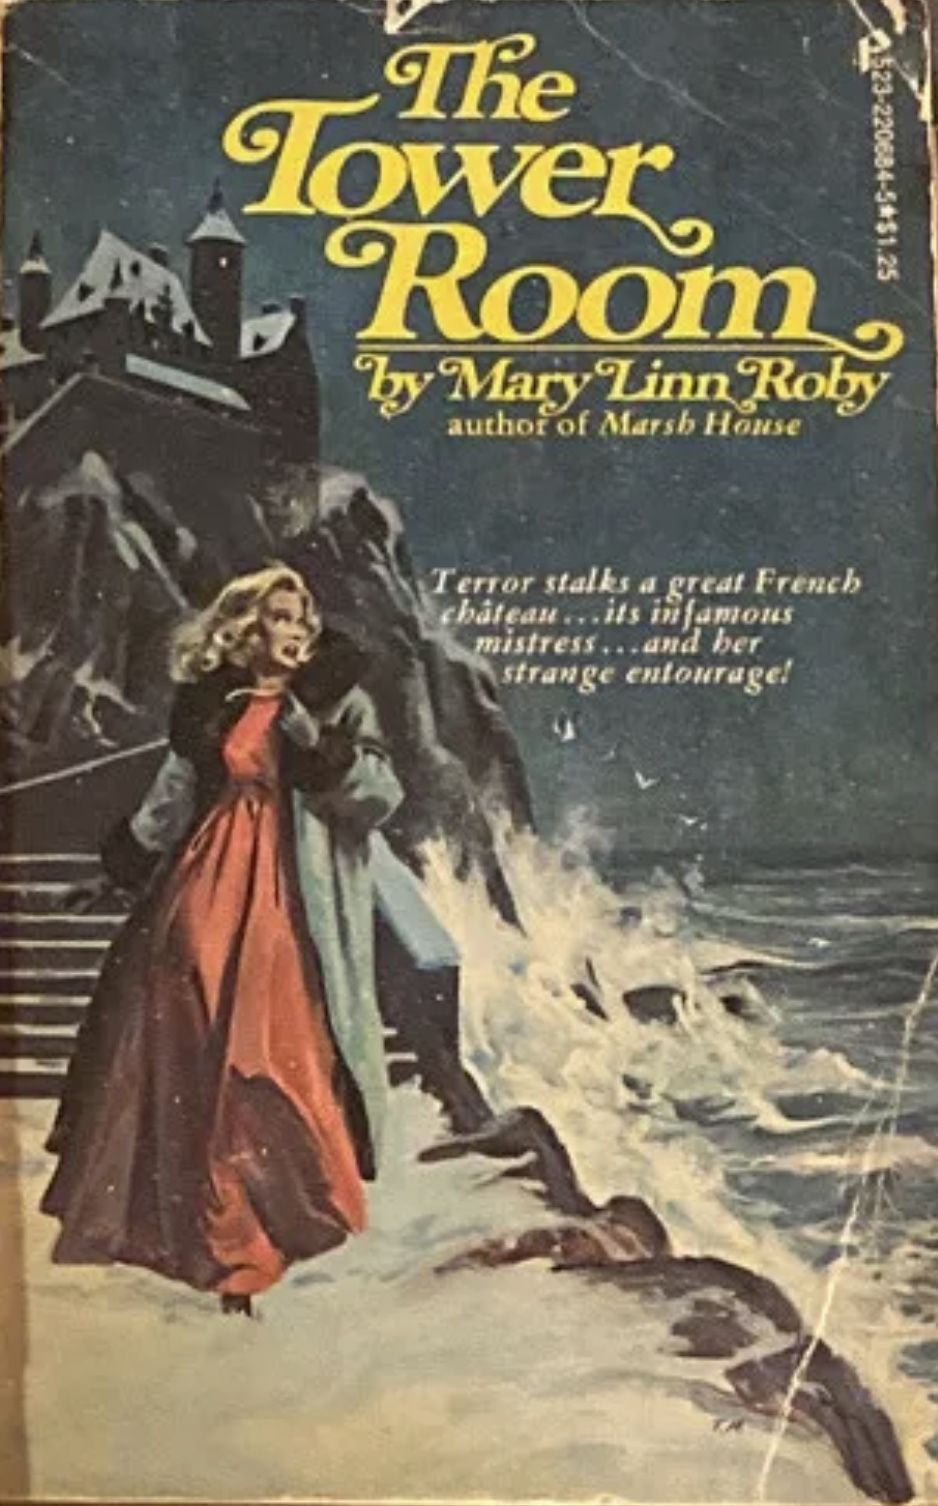 Pin By Andrea Koch On Gothics Gothic Novel Gothic Books Gothic Romance